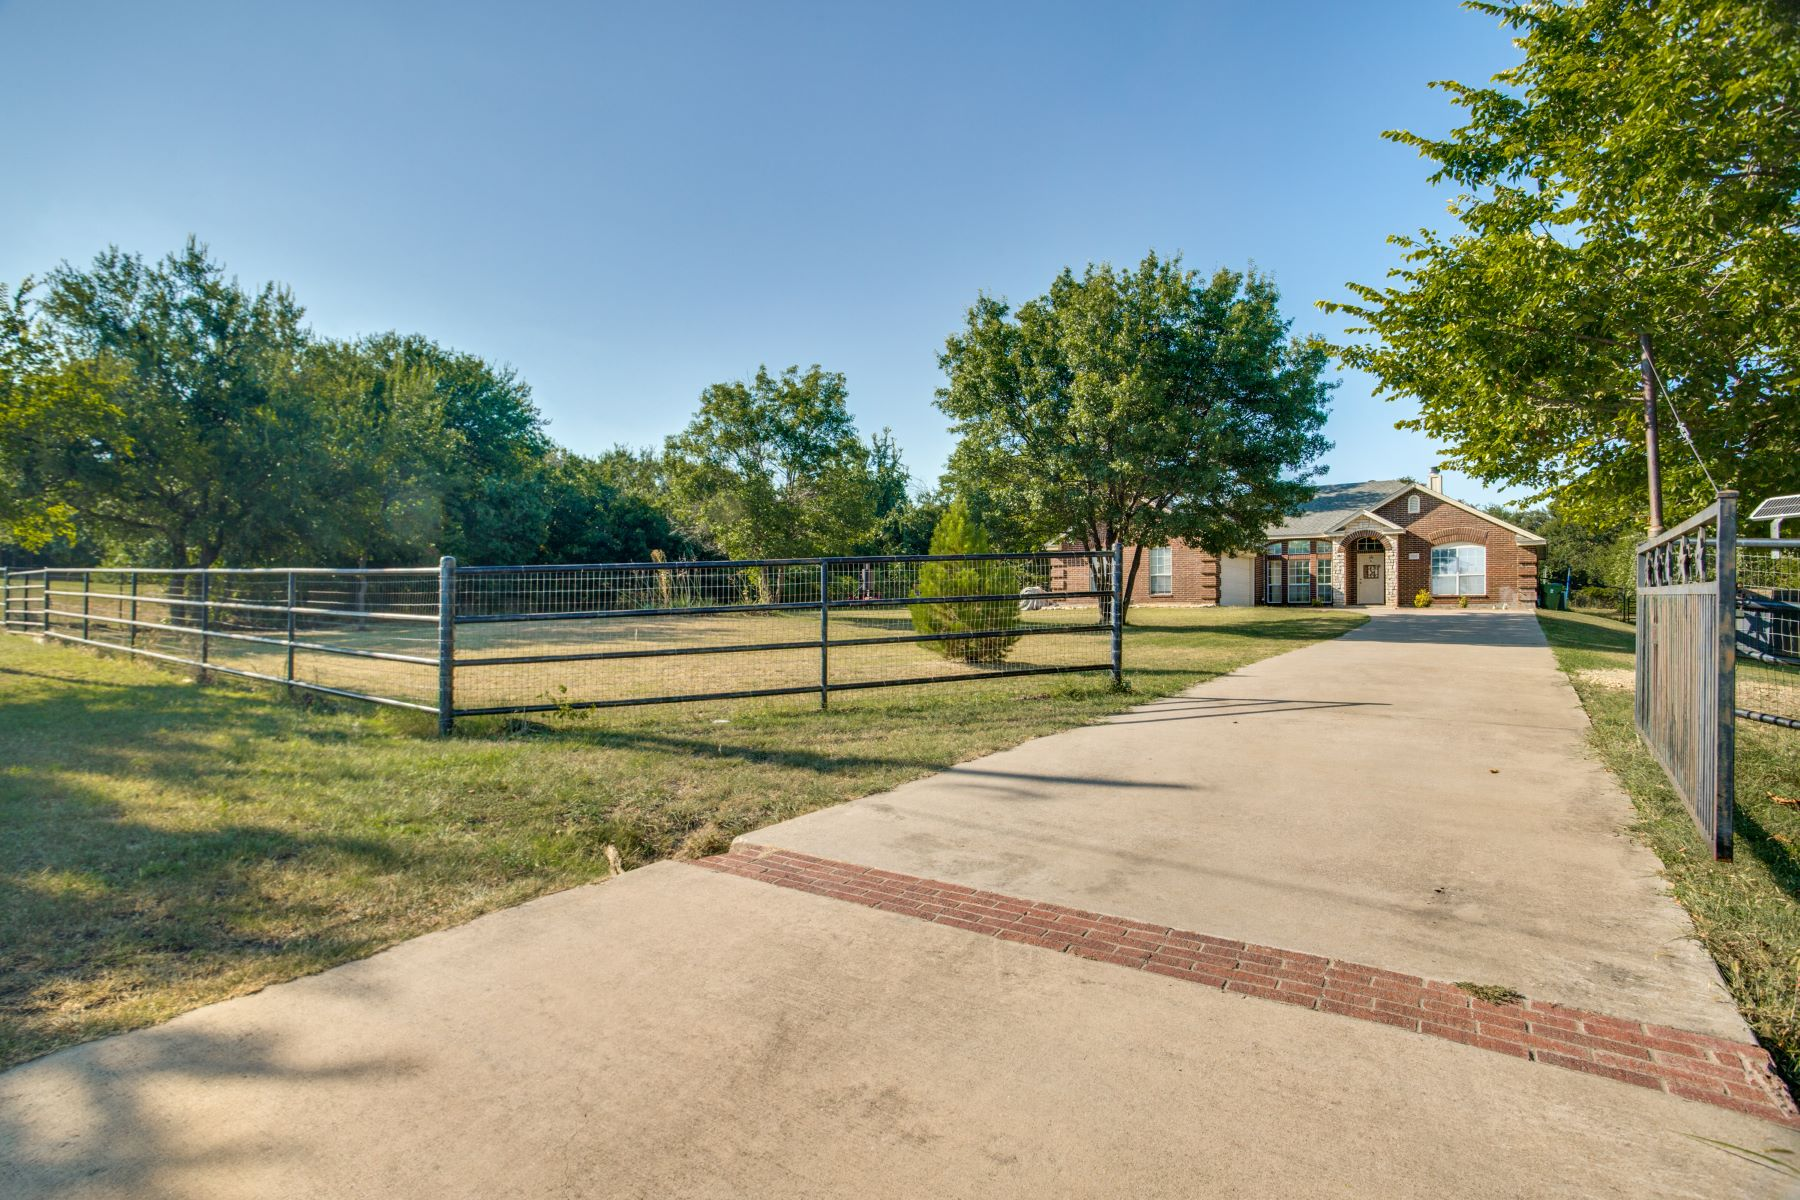 Single Family Homes for Active at Your own private oasis heavily wooded, feels rural but has all the conveniences 320 Pitchfork Trail Willow Park, Texas 76087 United States